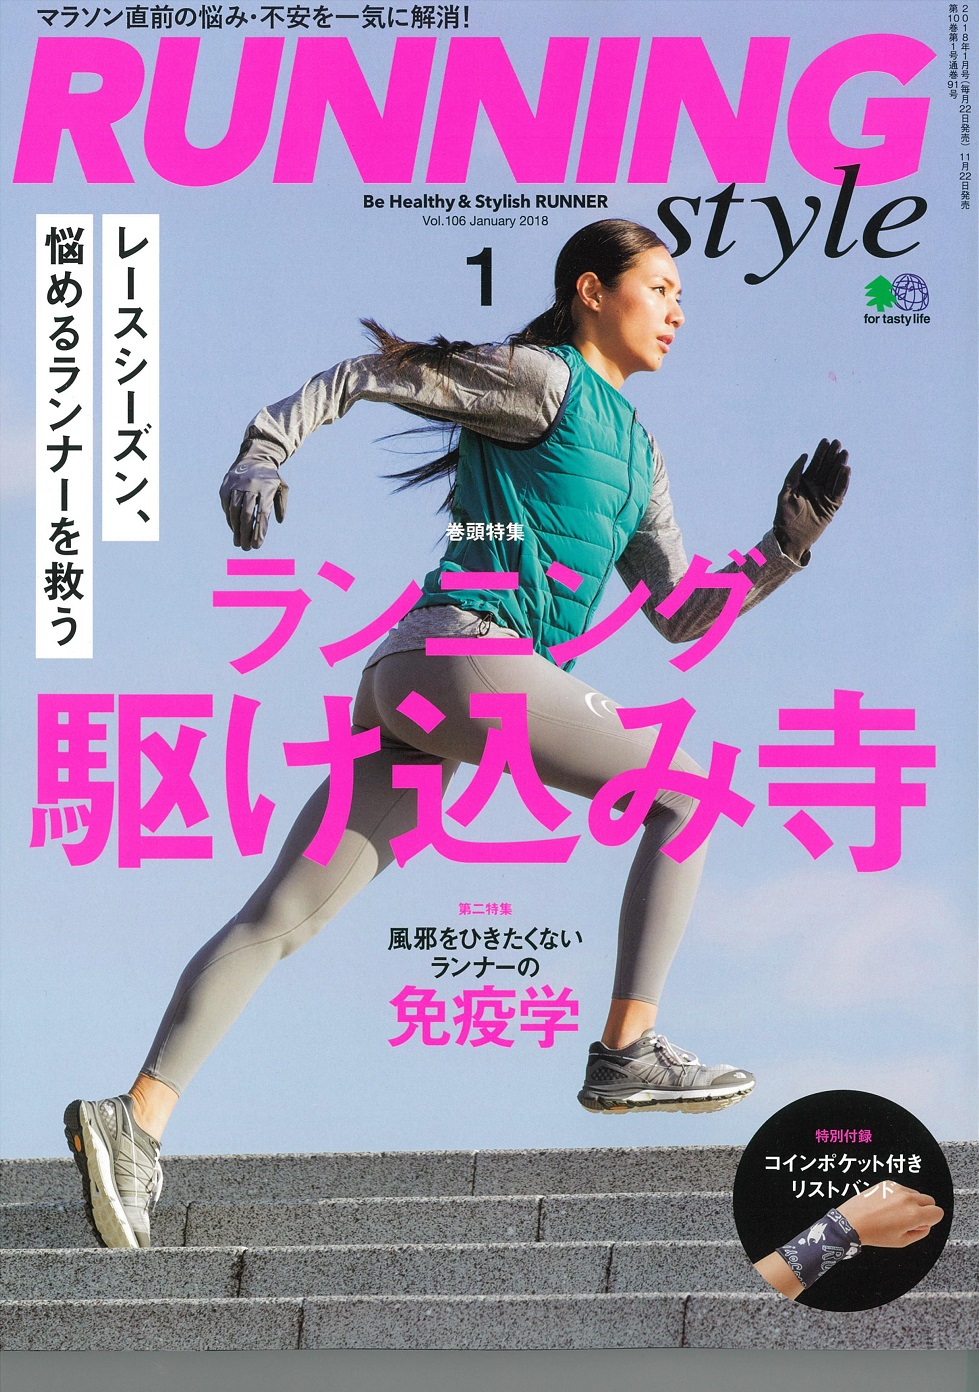 20171122RUNNINGstyle_COVER.jpg